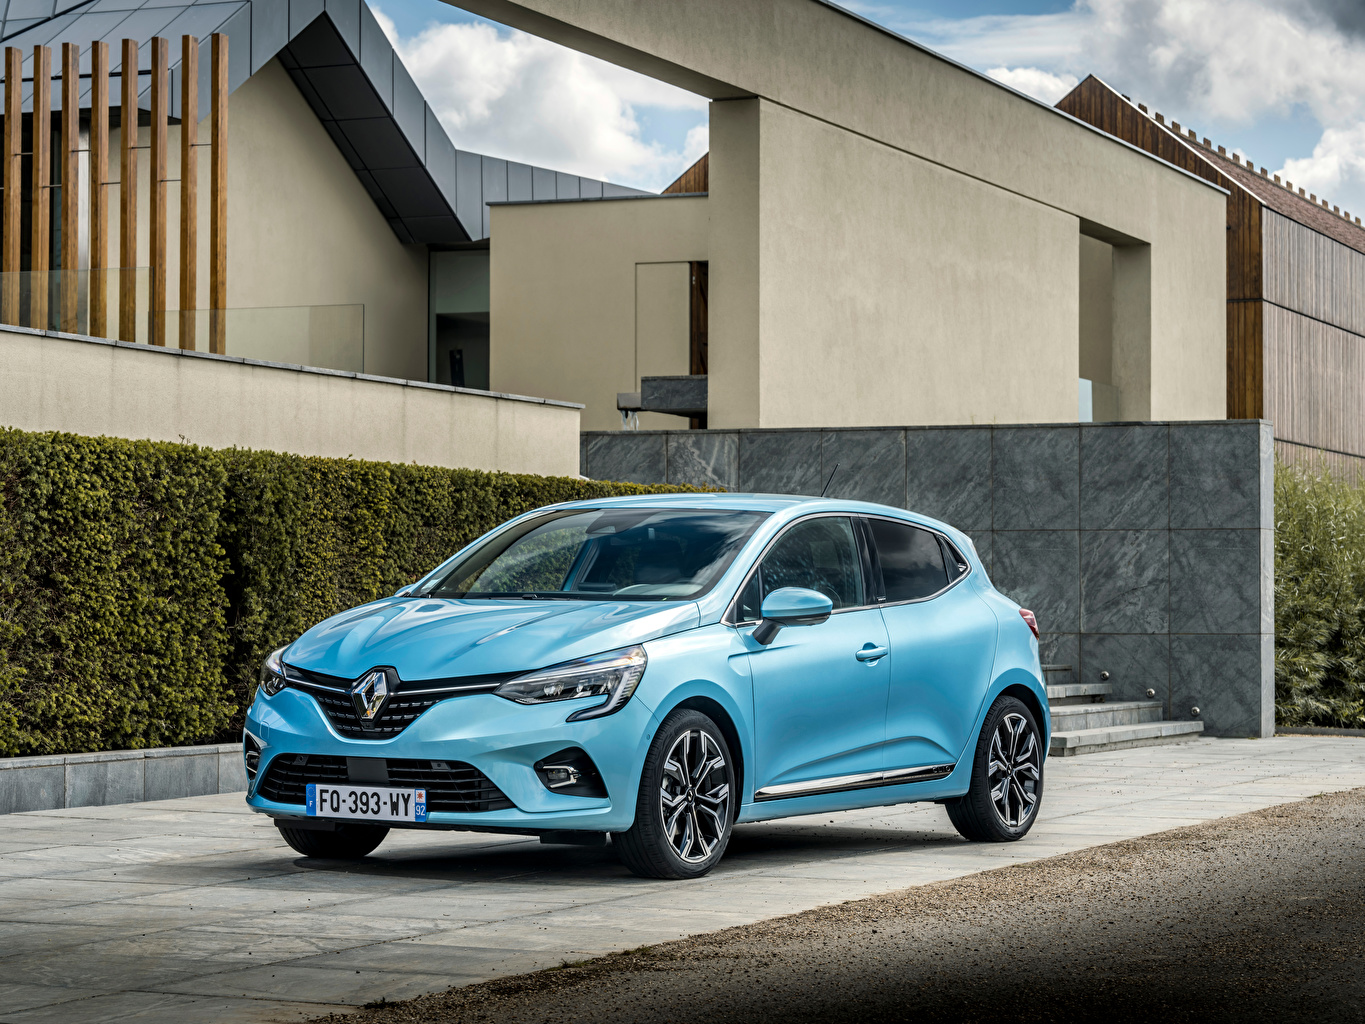 Images Renault Clio E-TECH, 2020 Light Blue auto Metallic Cars automobile